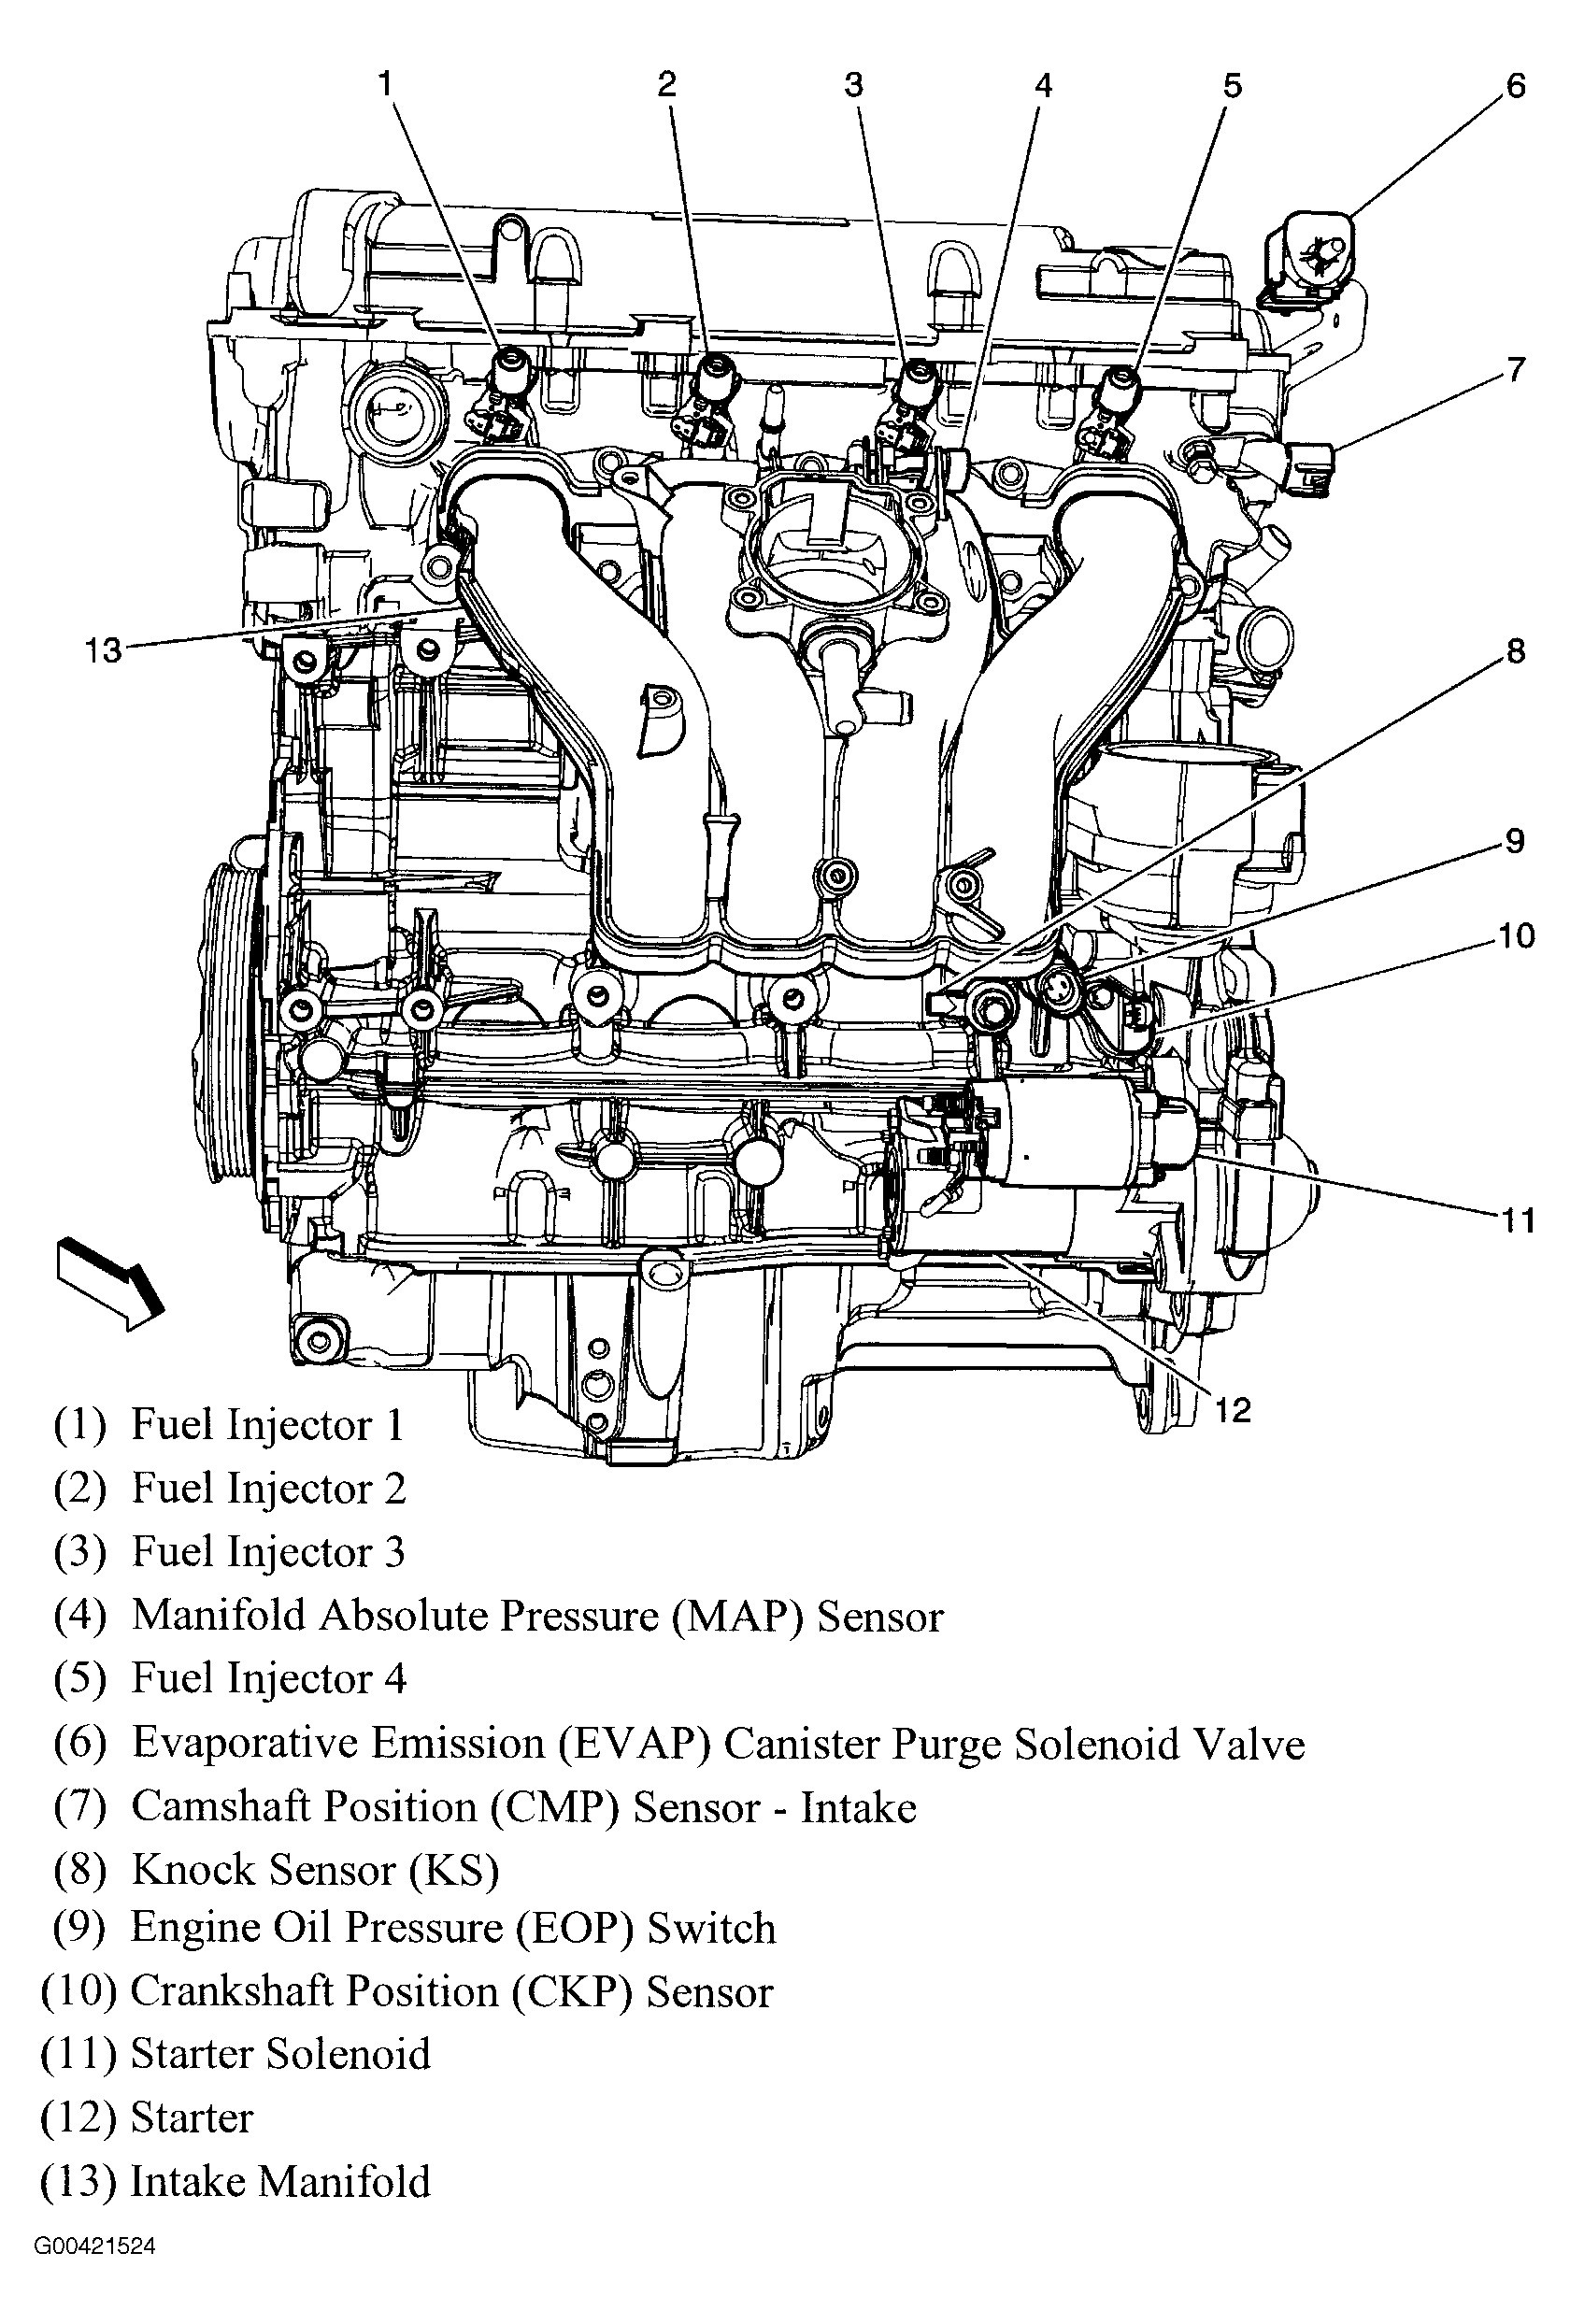 1998 buick lesabre engine diagram regulator